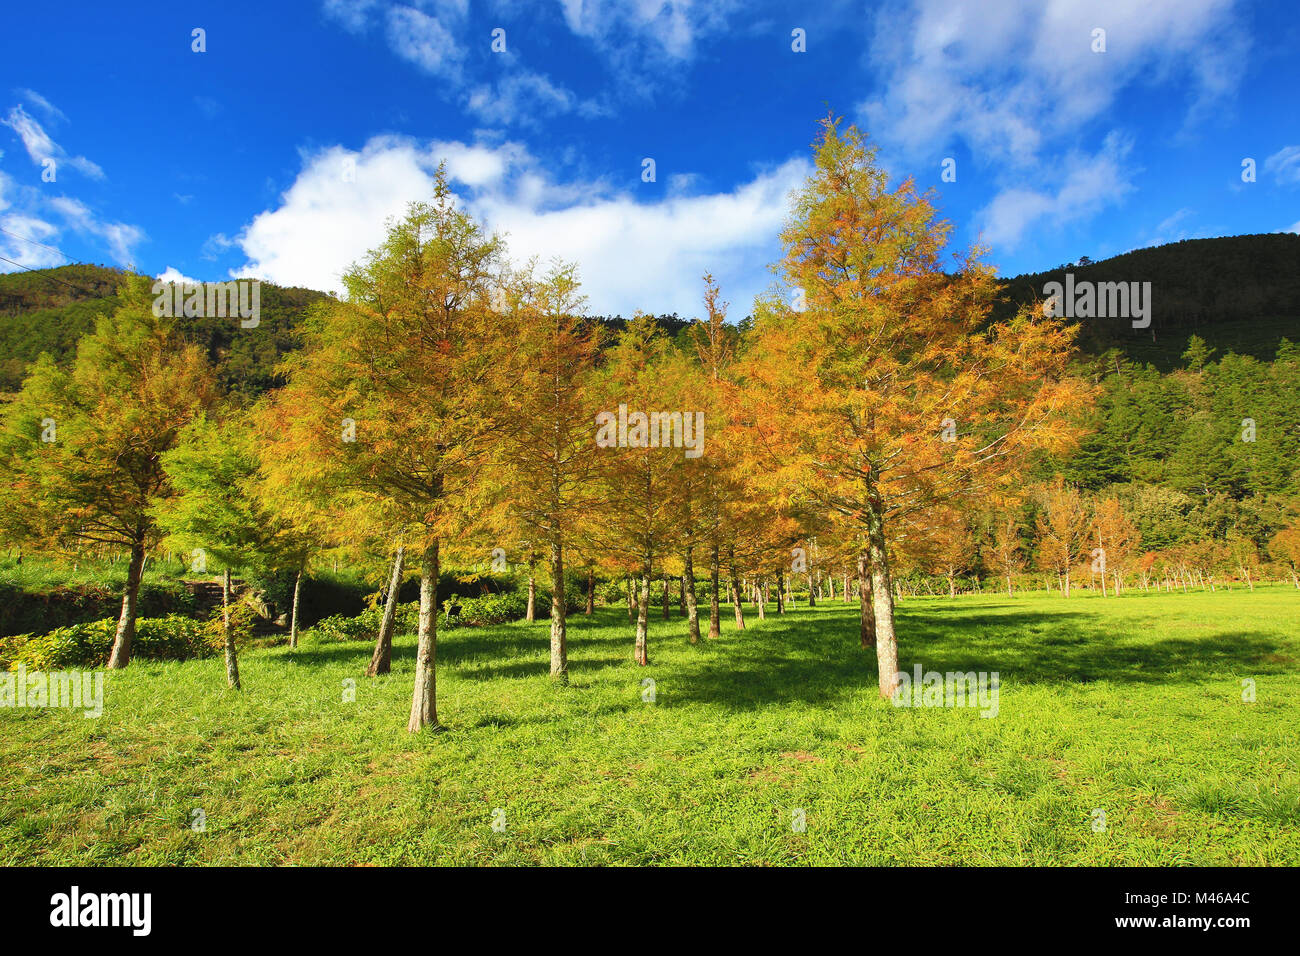 Landscape of Bald cypress trees,many beautiful colorful trees ...